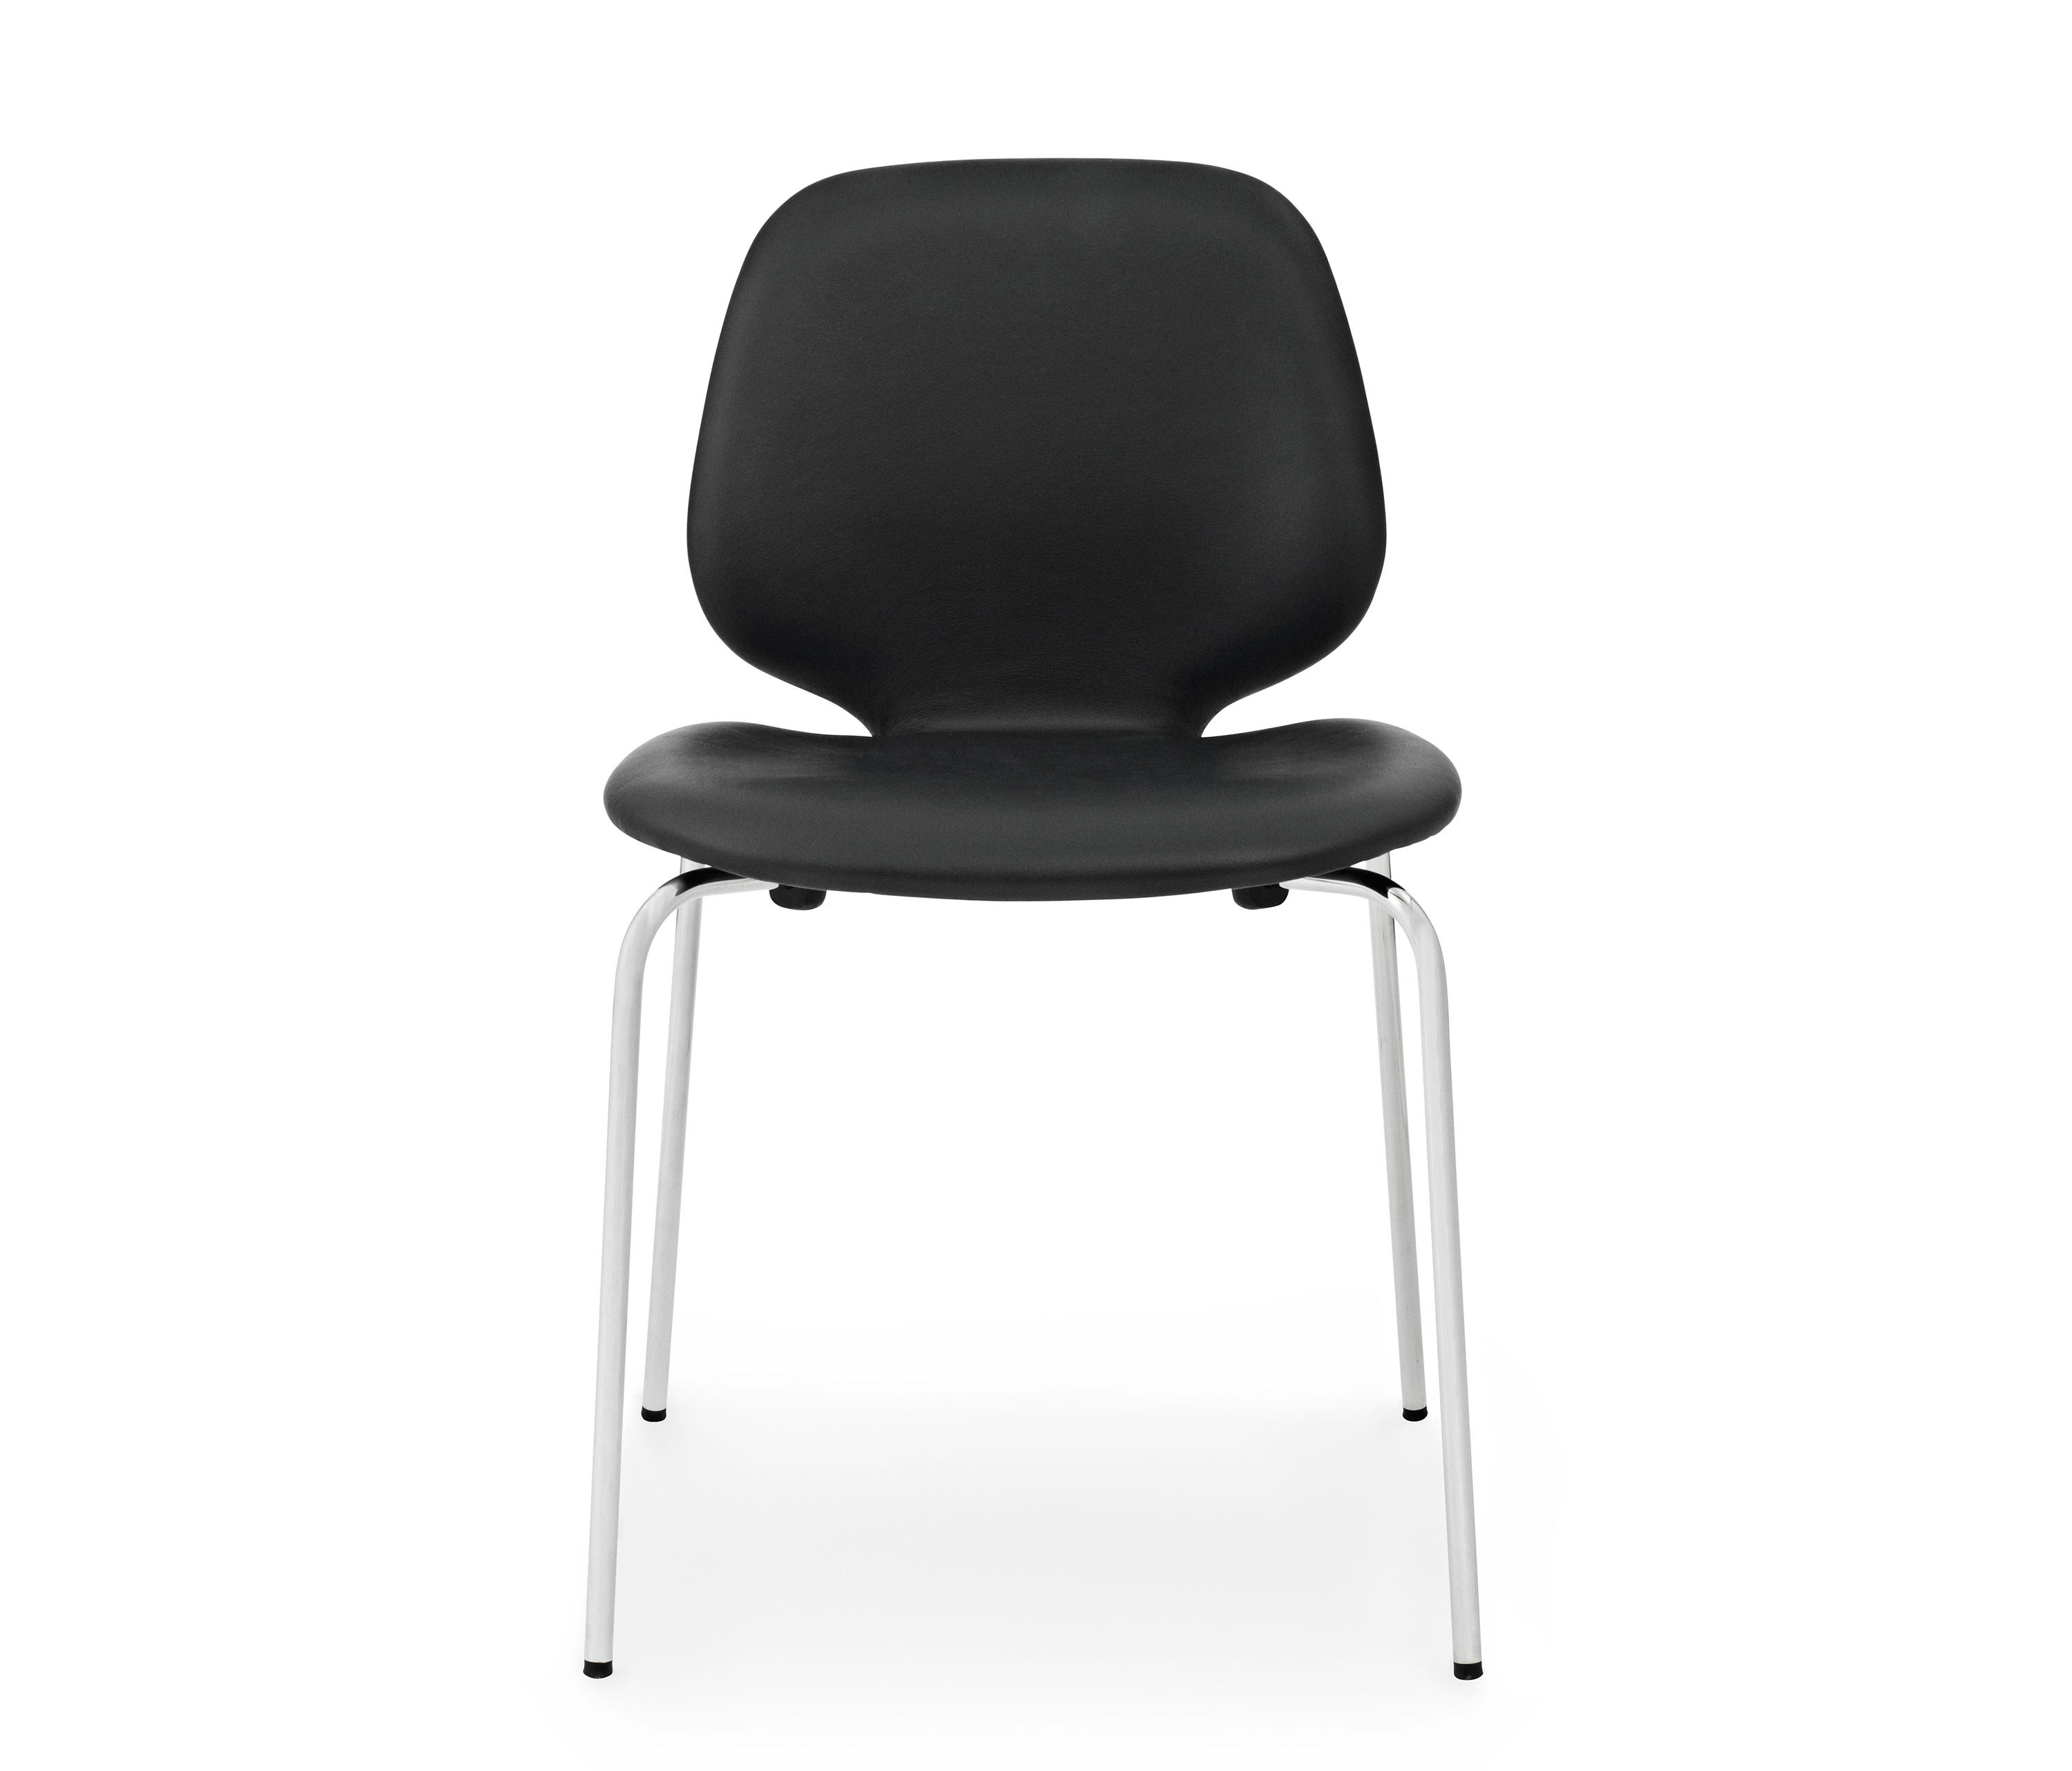 my chair visitors chairs side chairs from normann copenhagen architonic. Black Bedroom Furniture Sets. Home Design Ideas